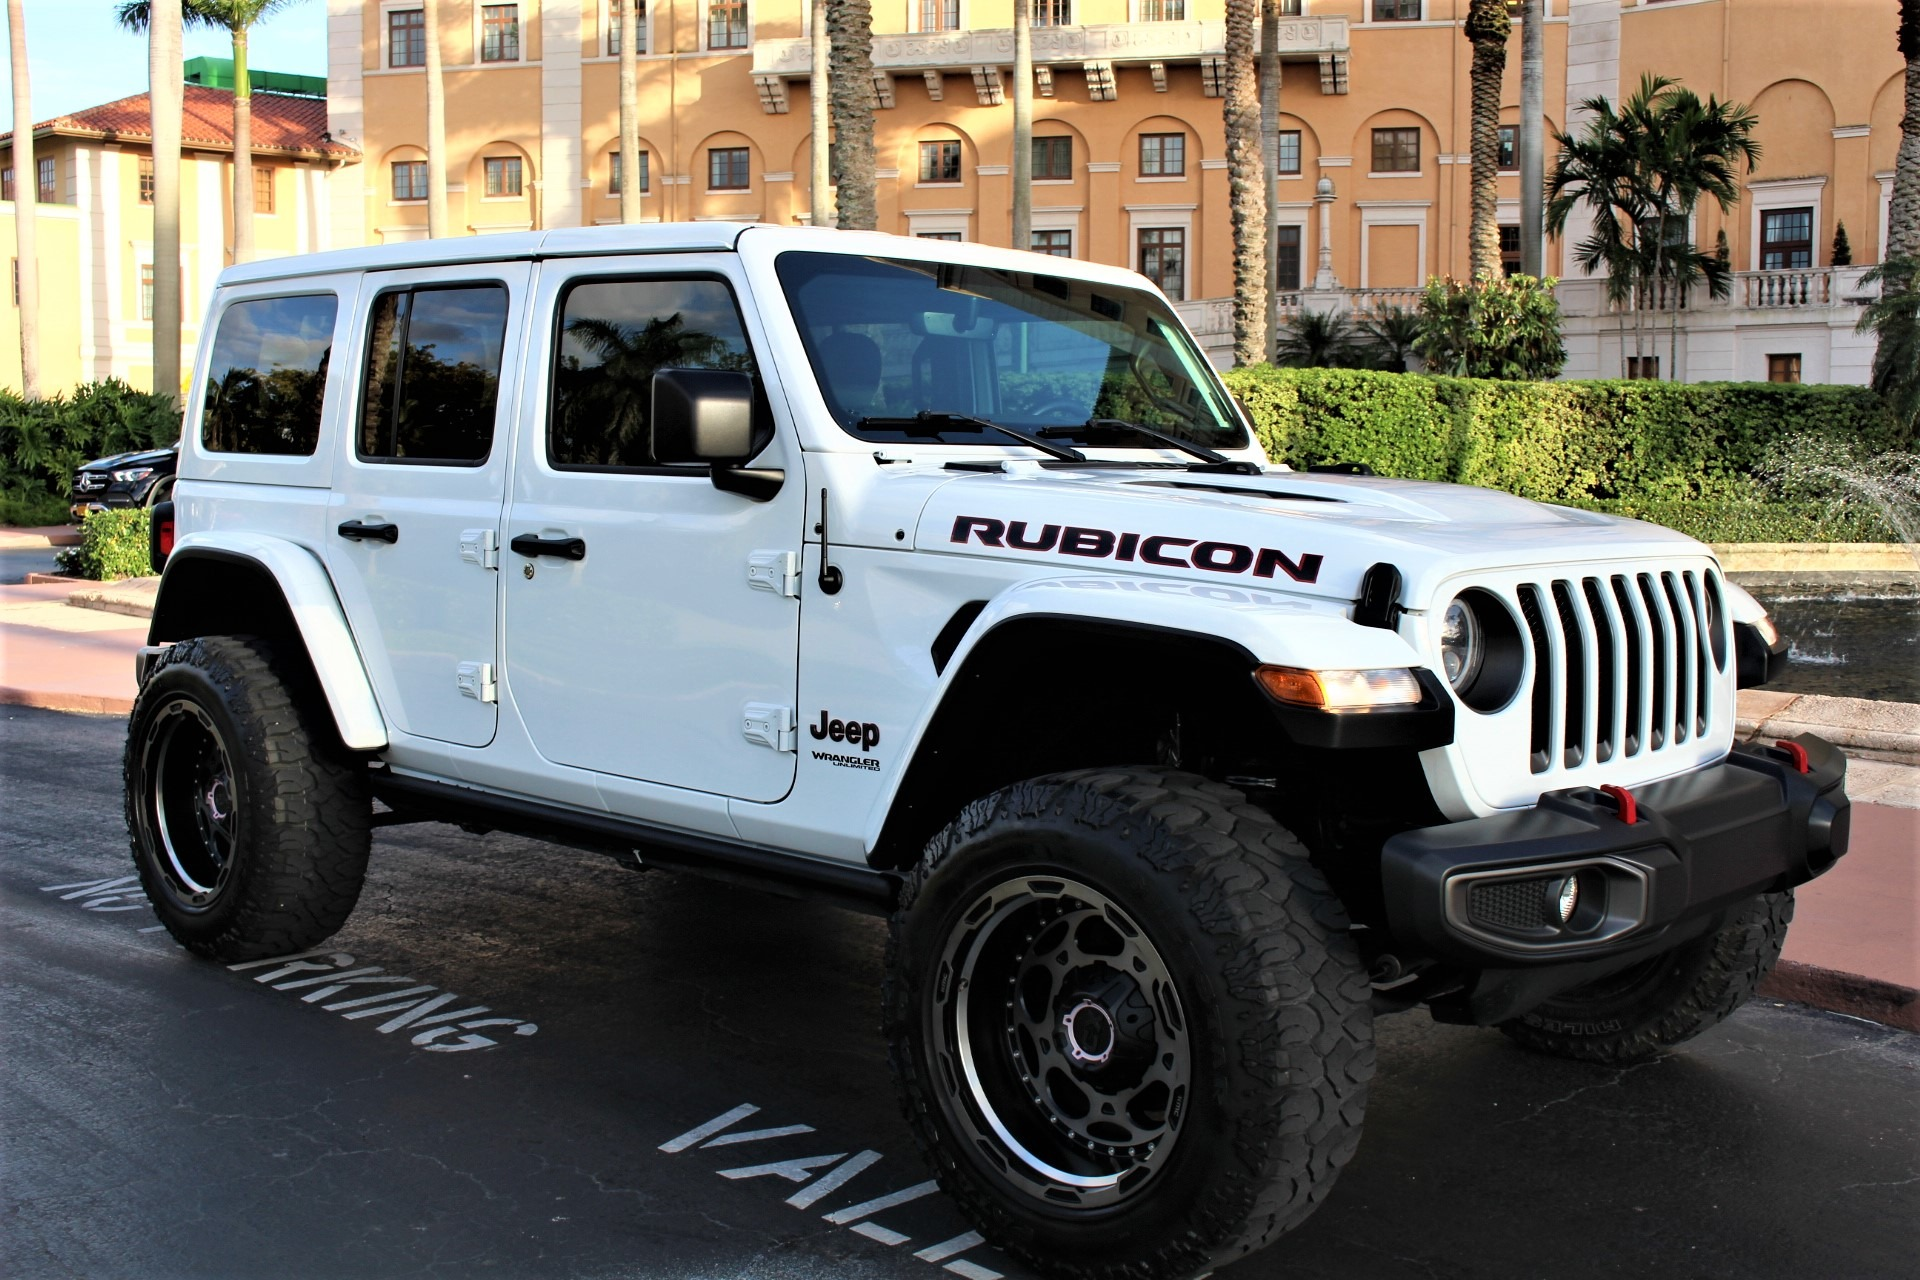 Used 2018 Jeep Wrangler Unlimited Rubicon for sale $48,850 at The Gables Sports Cars in Miami FL 33146 2